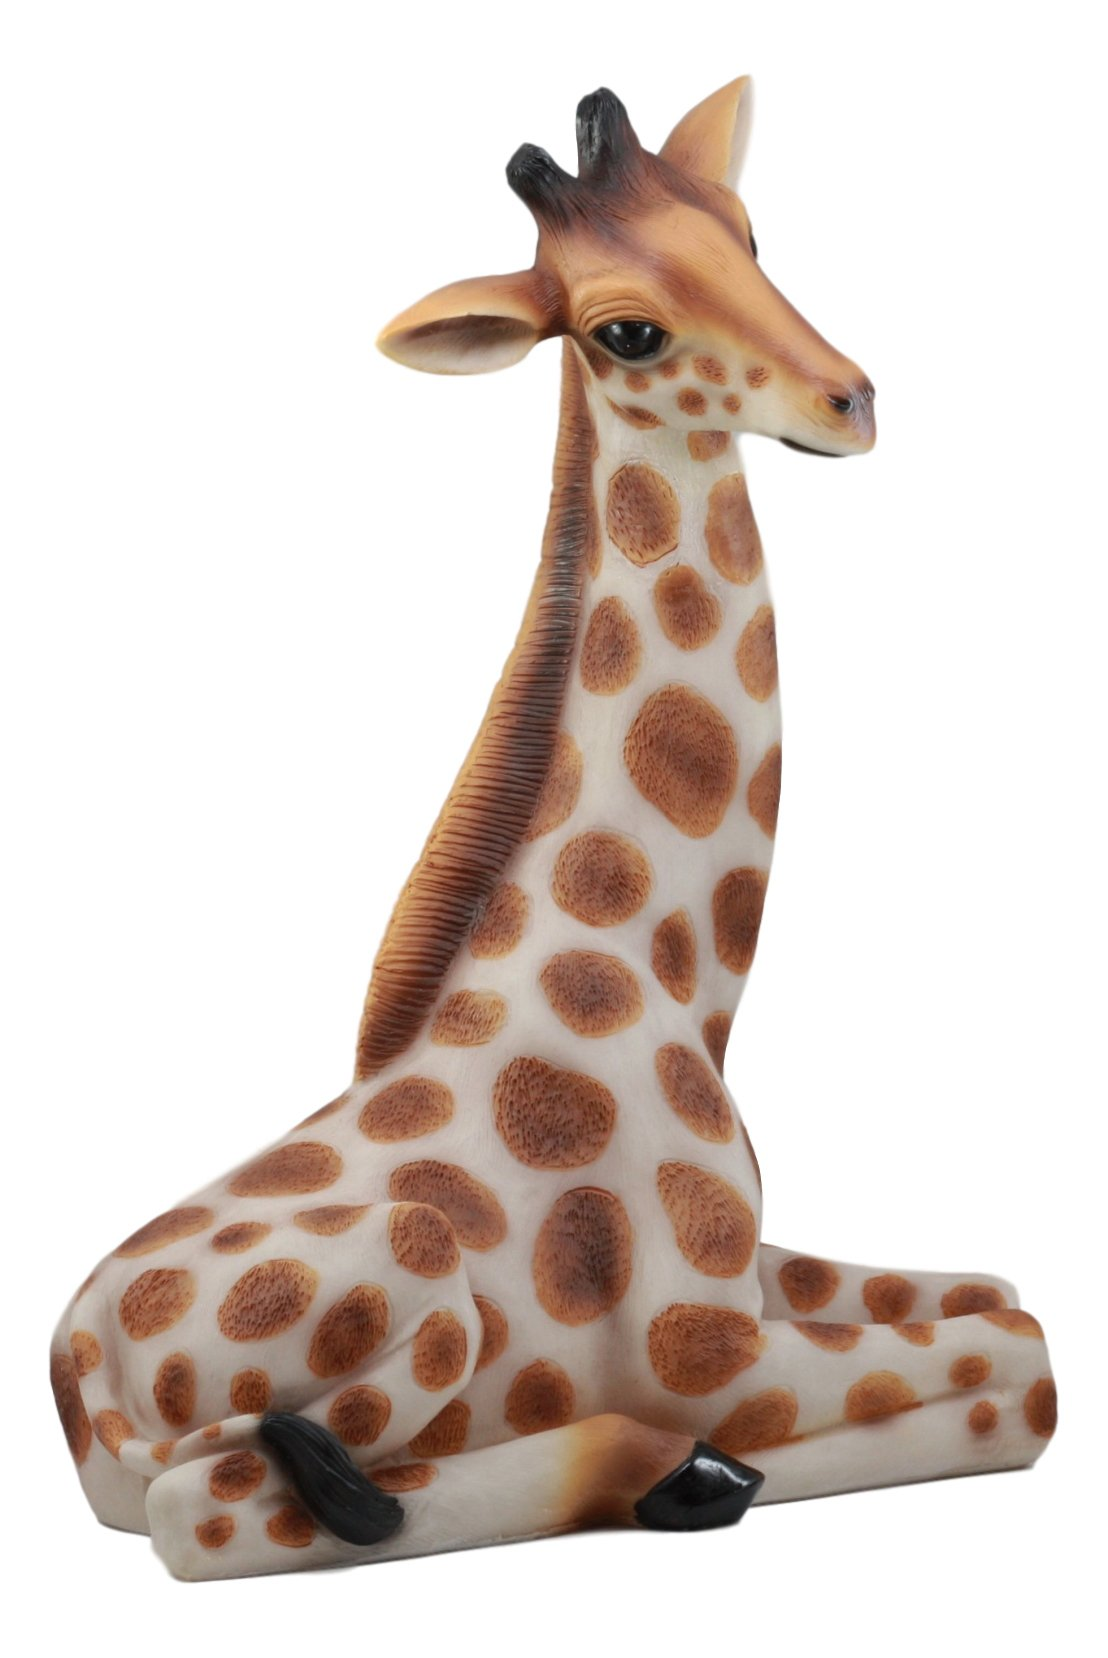 Ebros Large Madagascar Wildlife Sitting Giraffe Statue 19.5'' Tall Safari Savannah Reticulated Giraffe Animal Collectible Home Decor